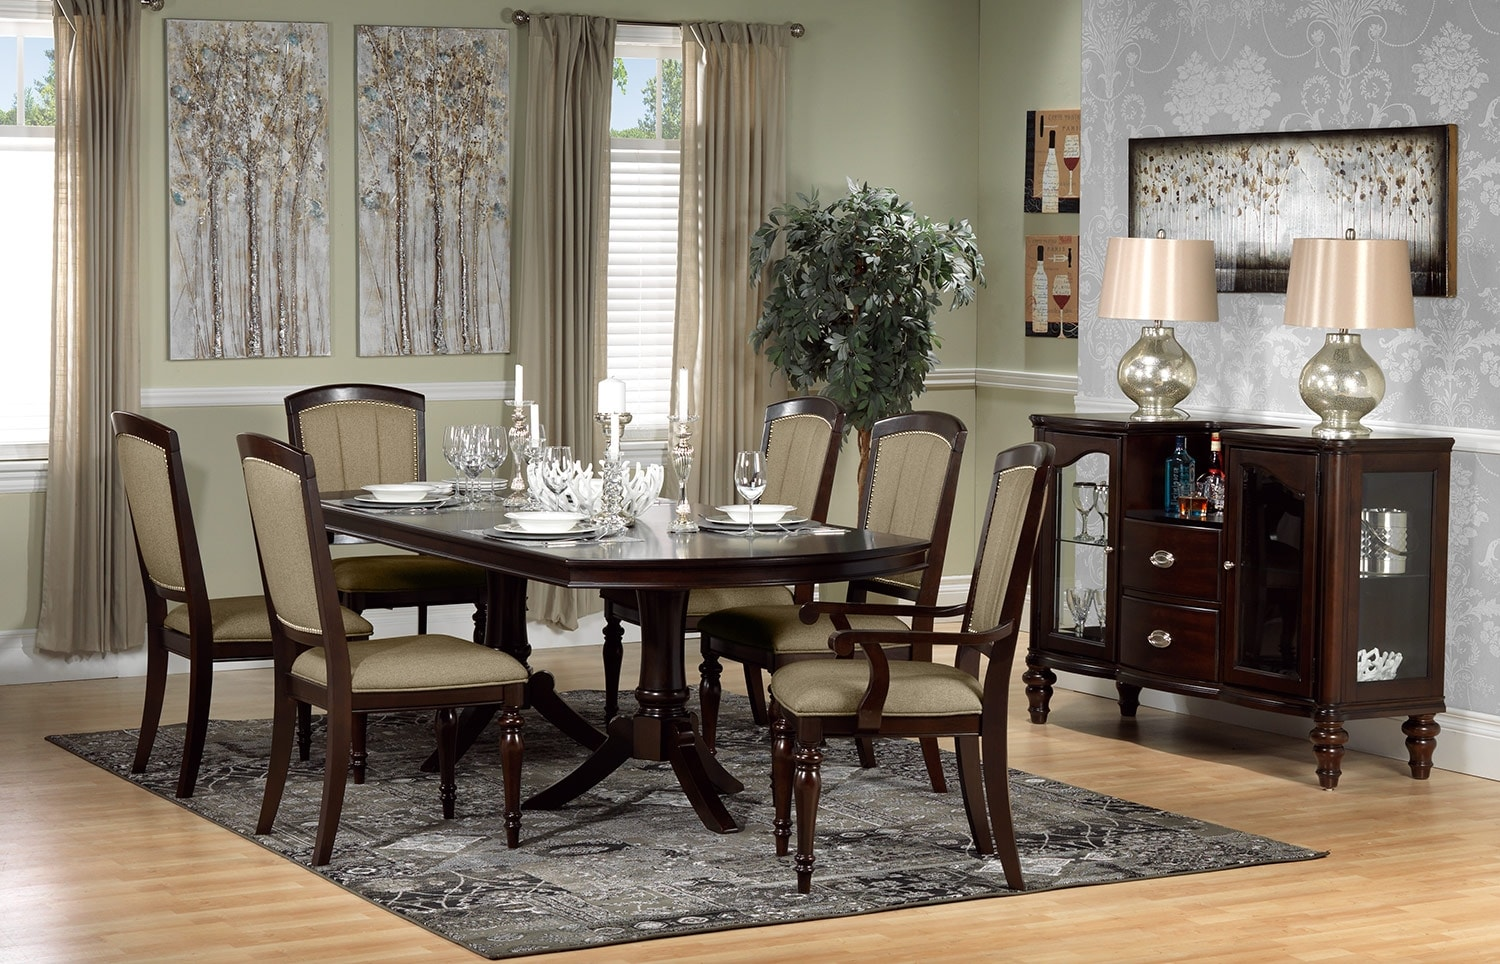 Thoreaux 7 Piece Dining Room Set